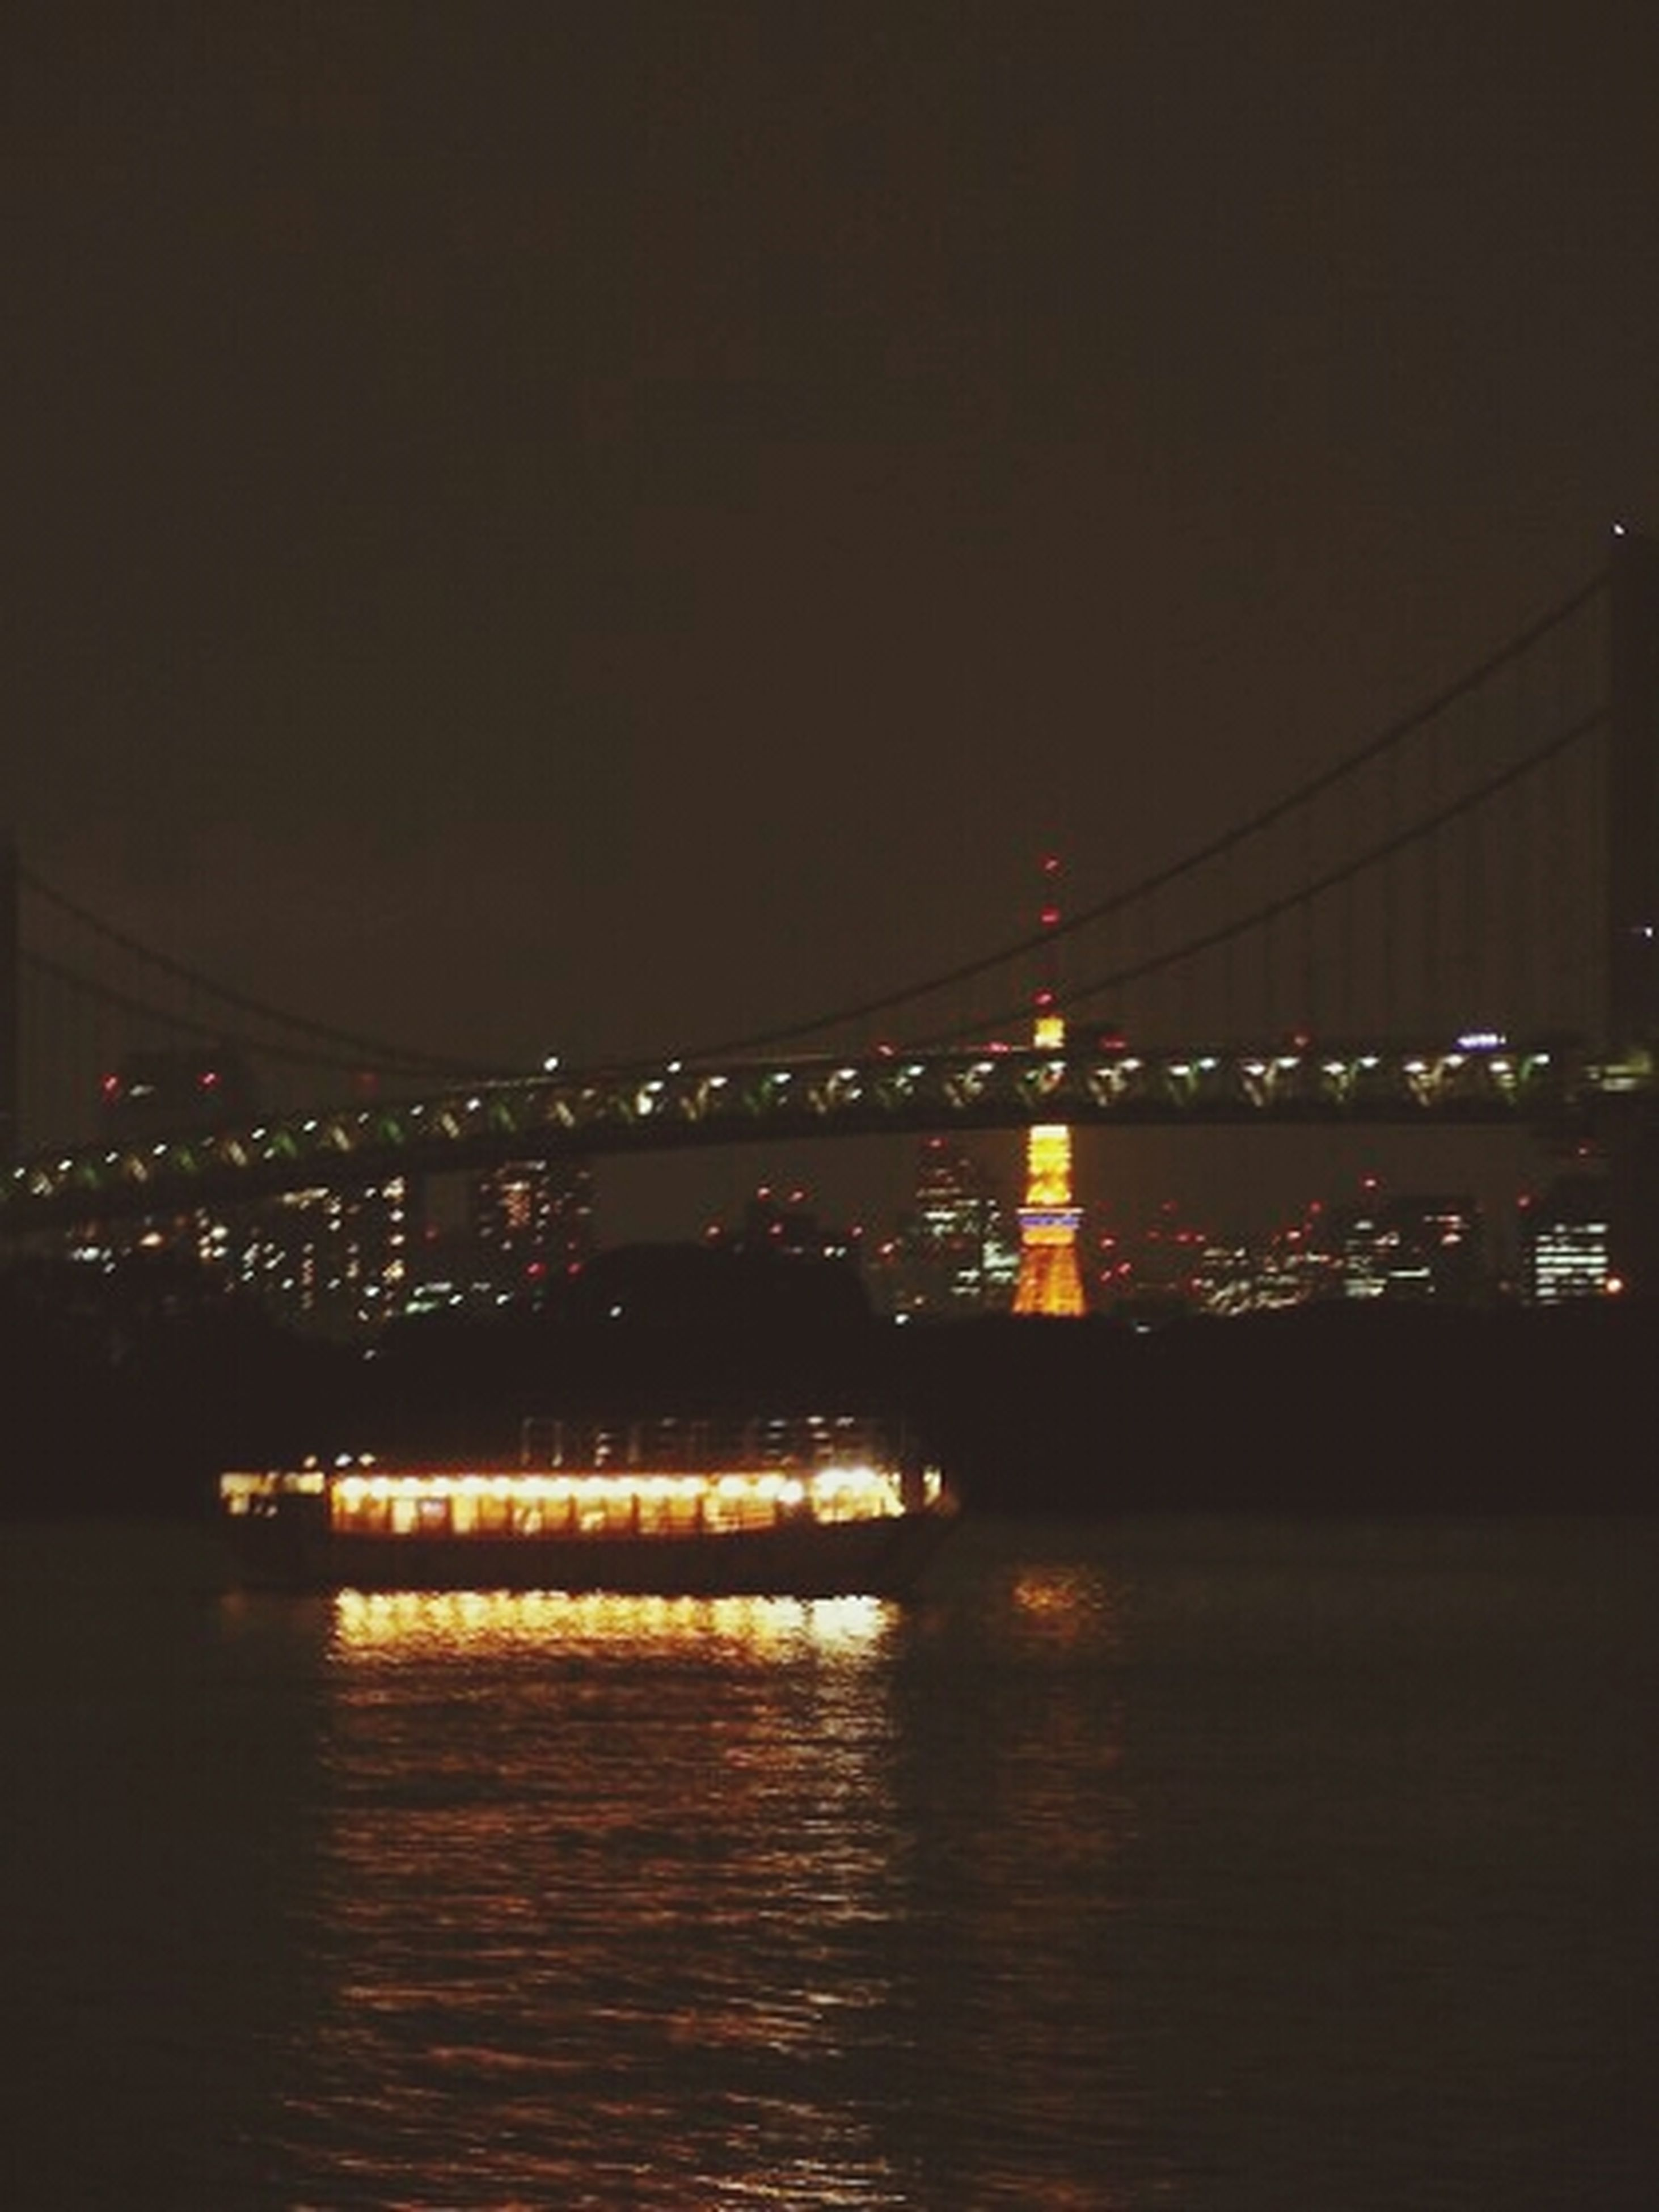 illuminated, night, connection, architecture, built structure, bridge - man made structure, water, river, waterfront, bridge, engineering, copy space, transportation, city, clear sky, suspension bridge, reflection, sea, sky, building exterior